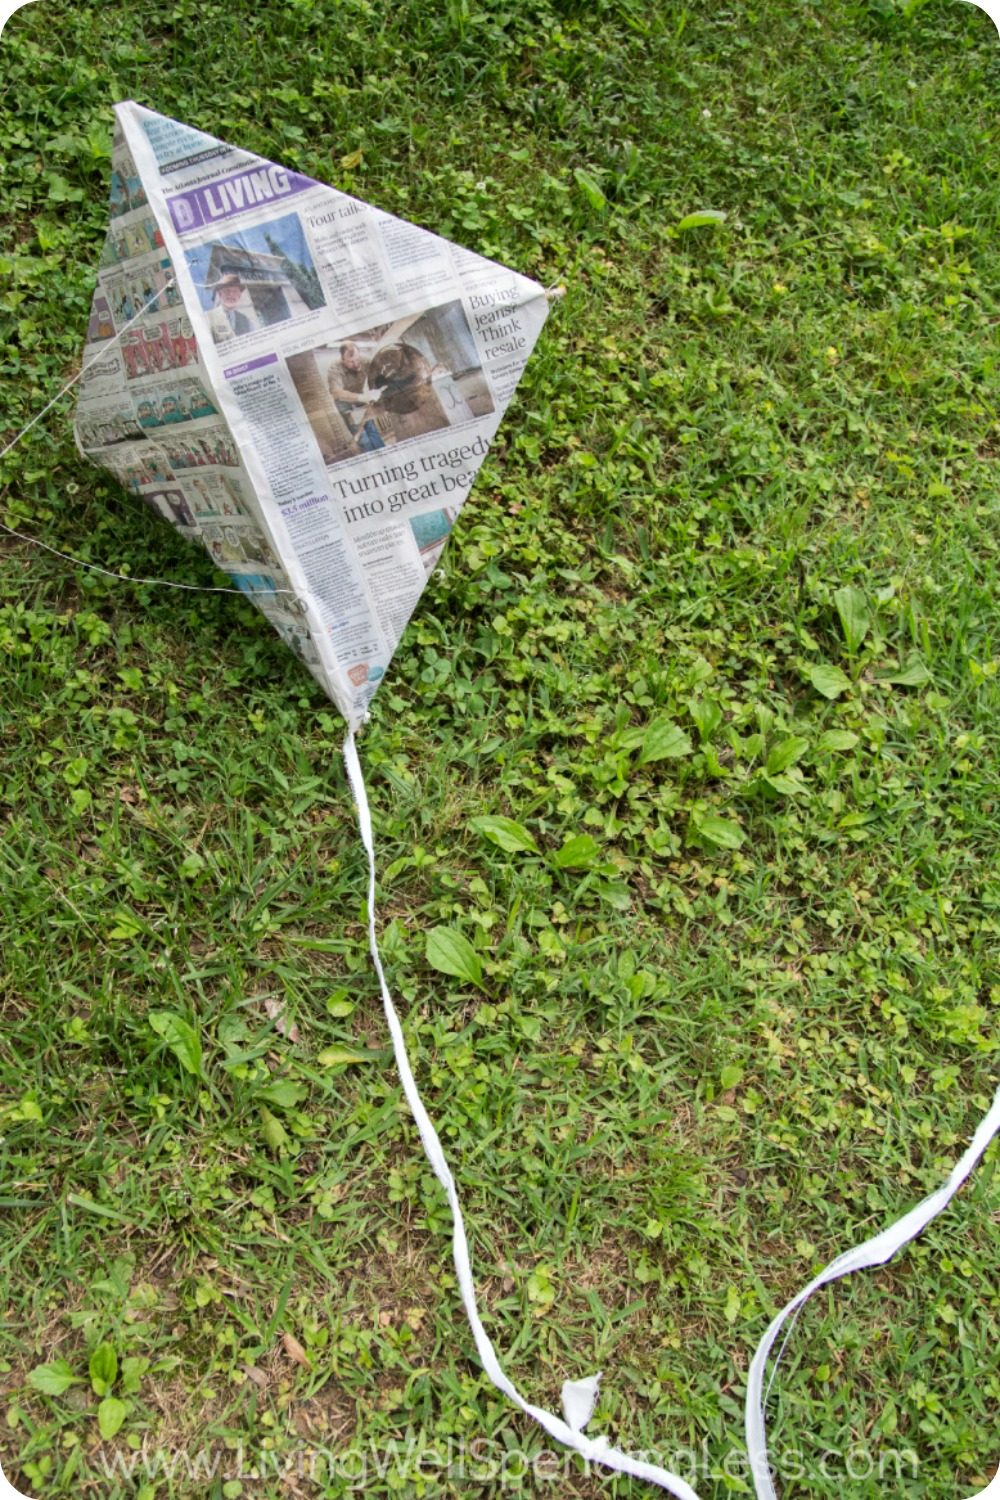 DIY Newspaper Kite 11 Vertical